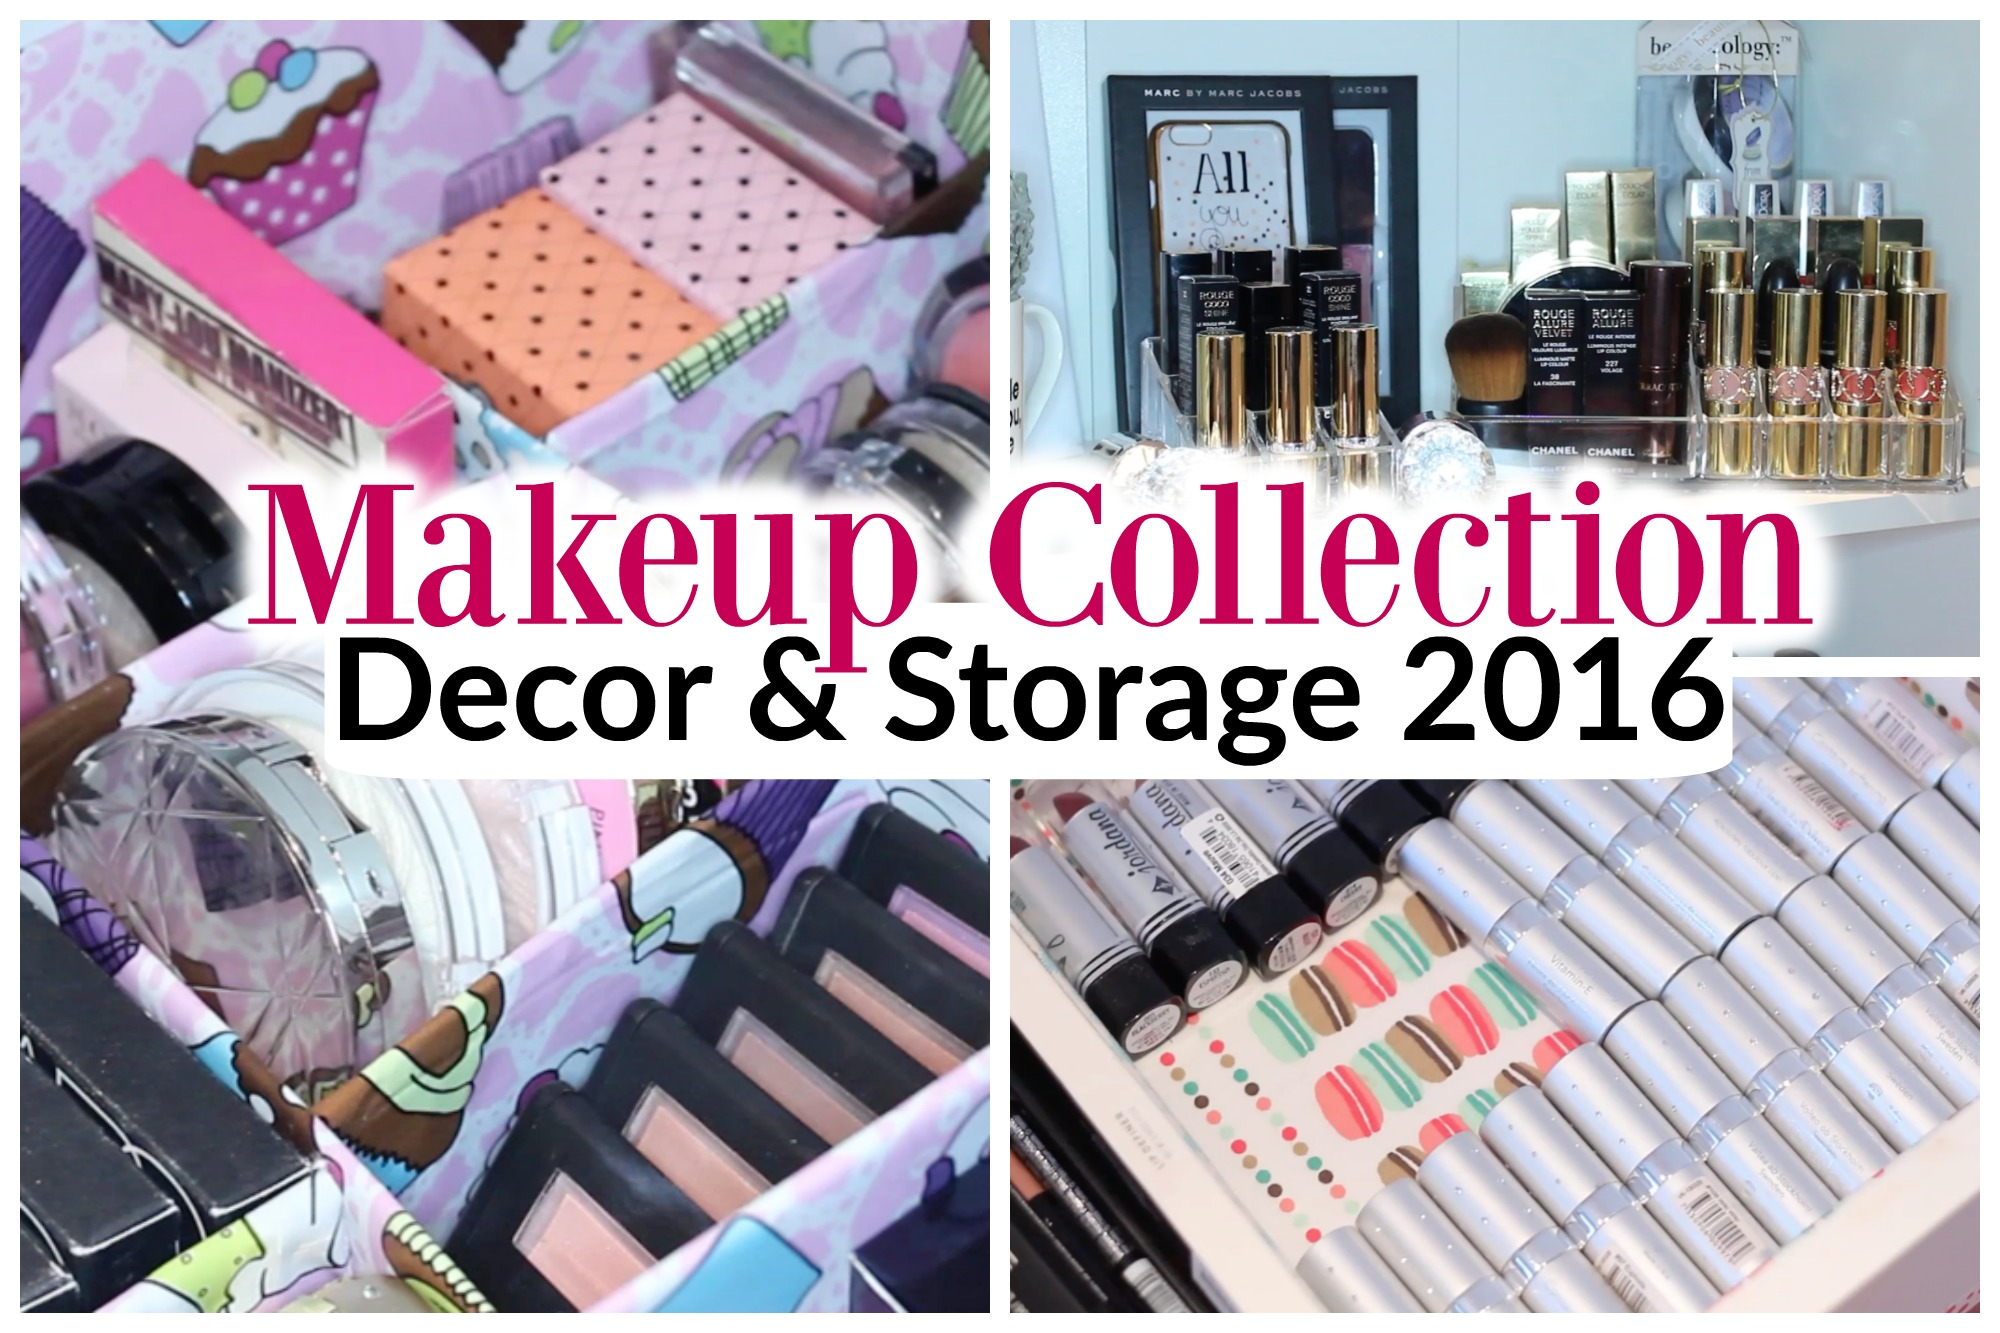 makeupcollection1 copy